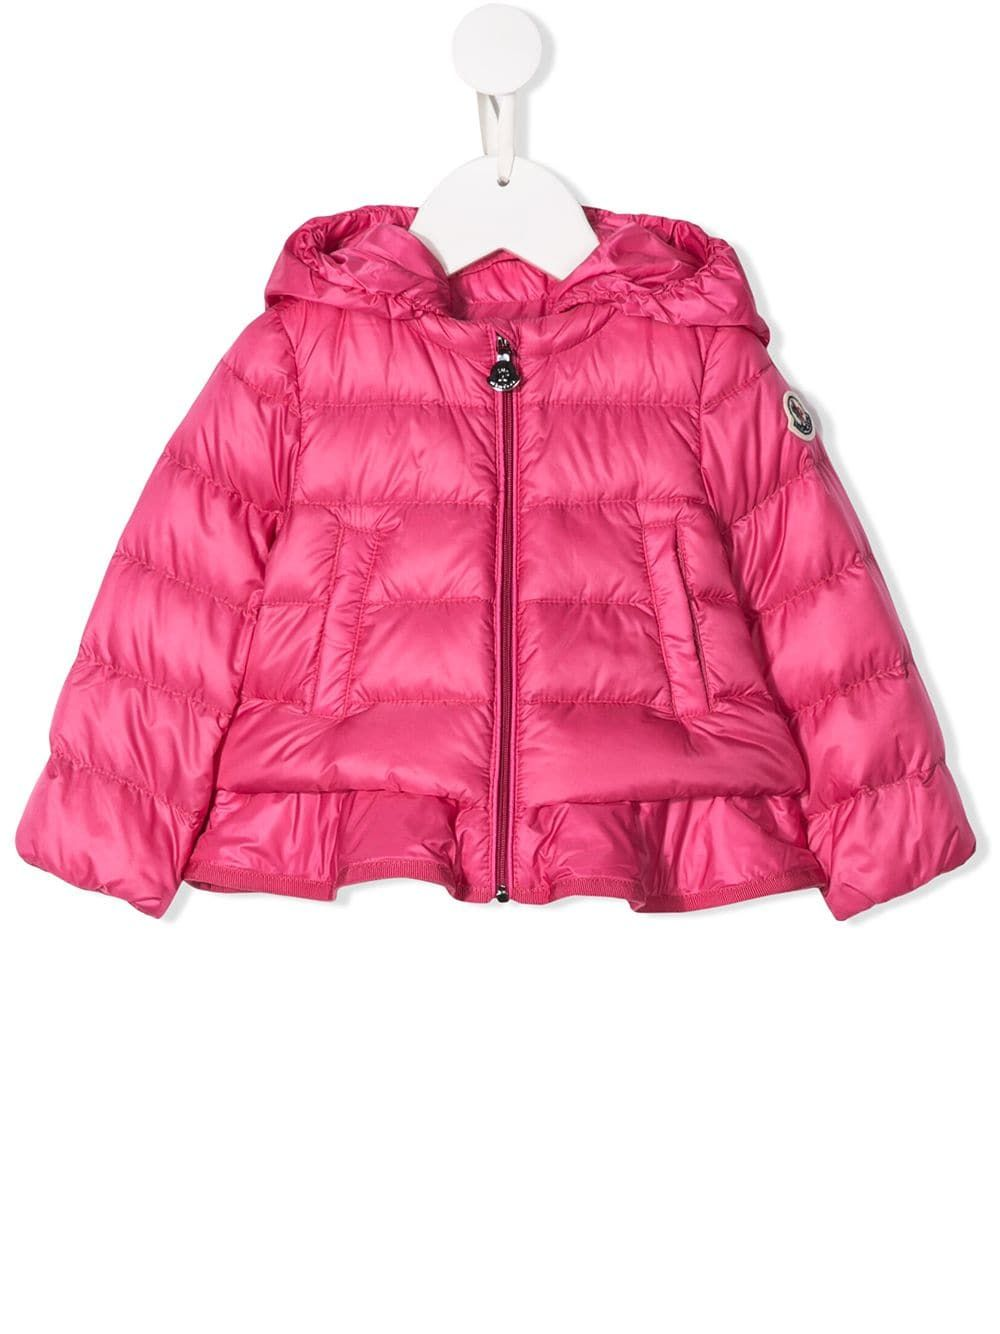 2468840d7 Moncler Kids ruffled hem padded jacket - Pink in 2019 | Products ...